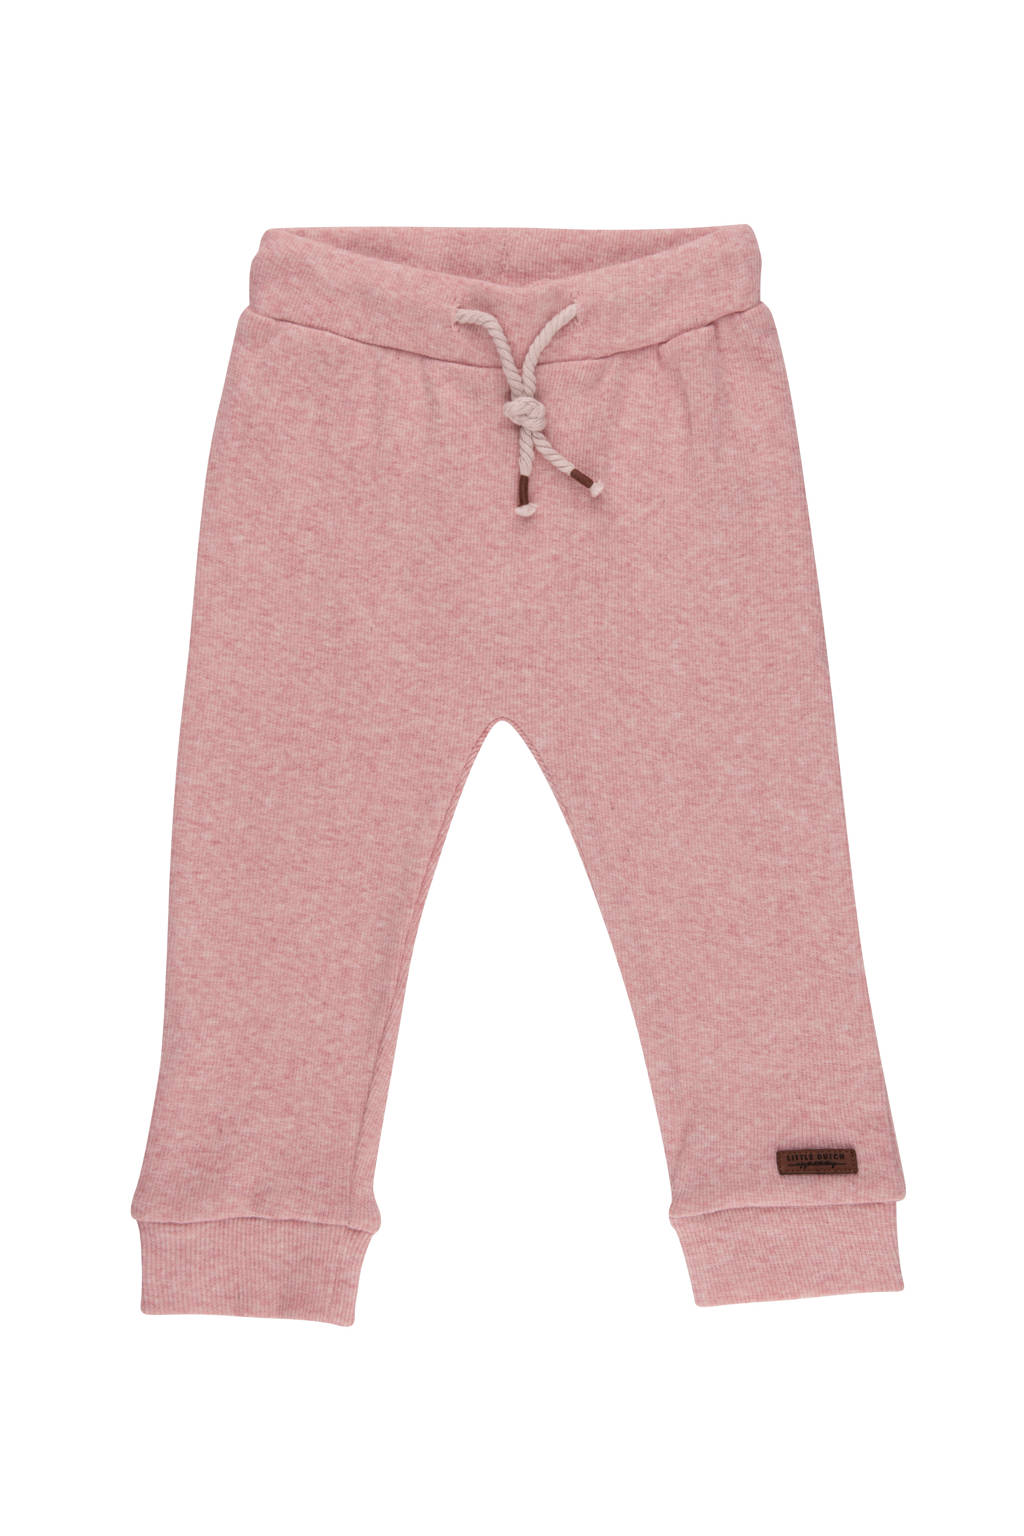 Little Dutch baby regular fit broek roze, Roze